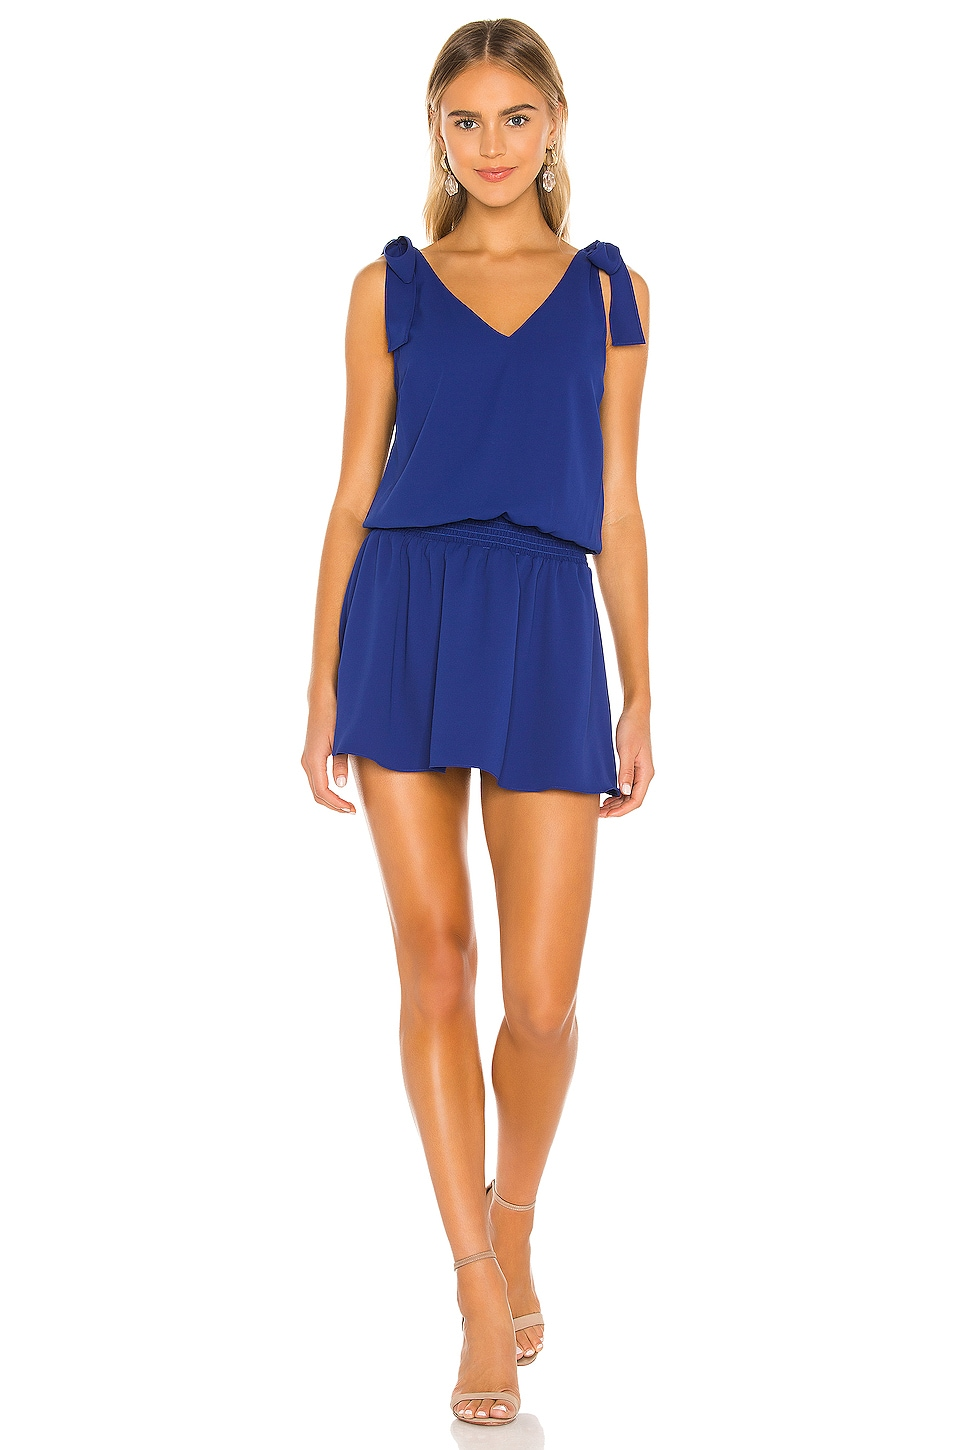 Josephina Dress             Amanda Uprichard                                                                                                       CA$ 272.92 18